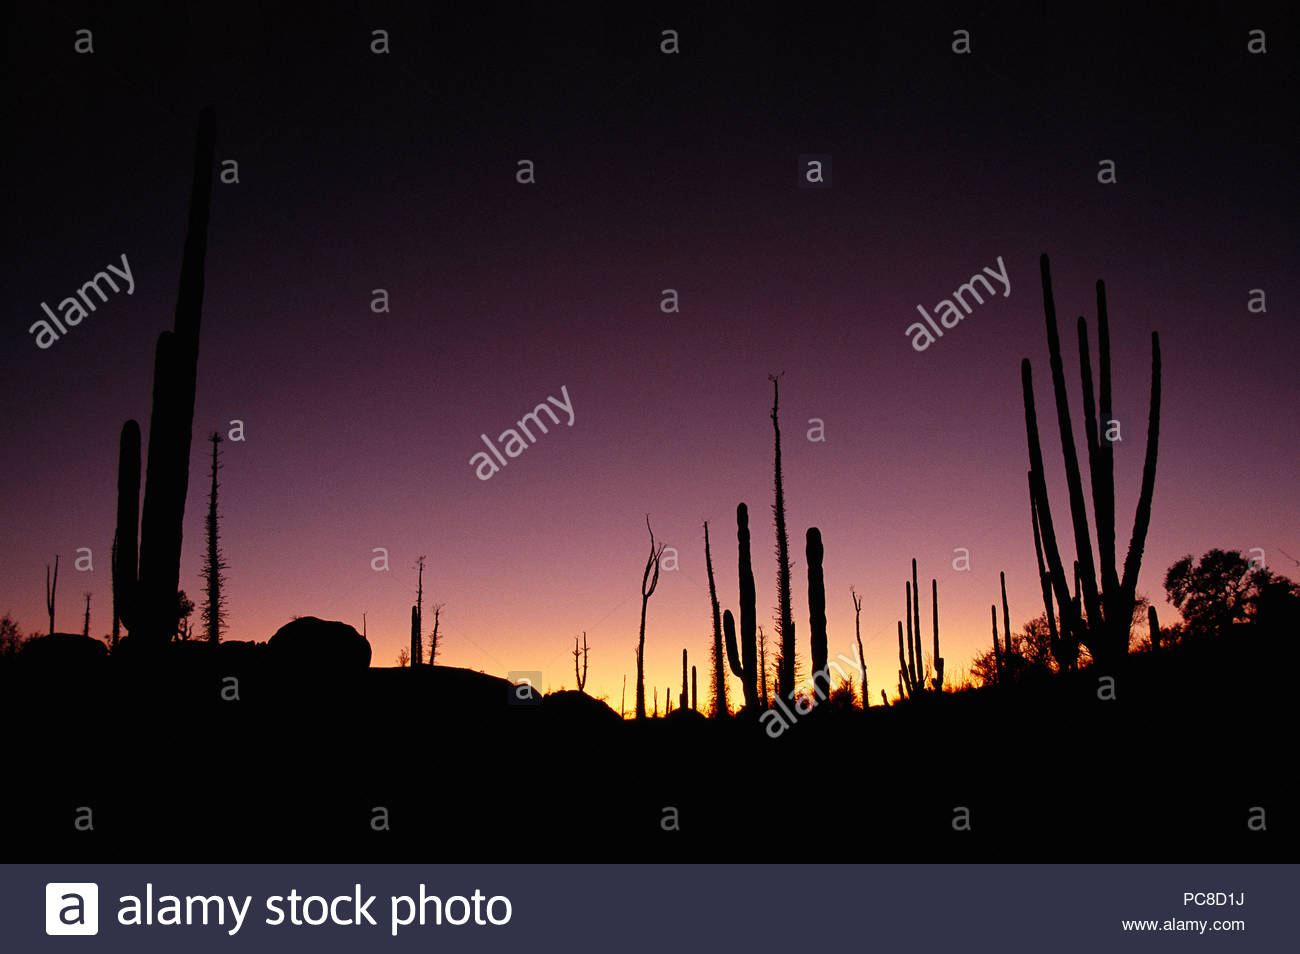 Cacti silhouetted against twilight sky. - Stock Image